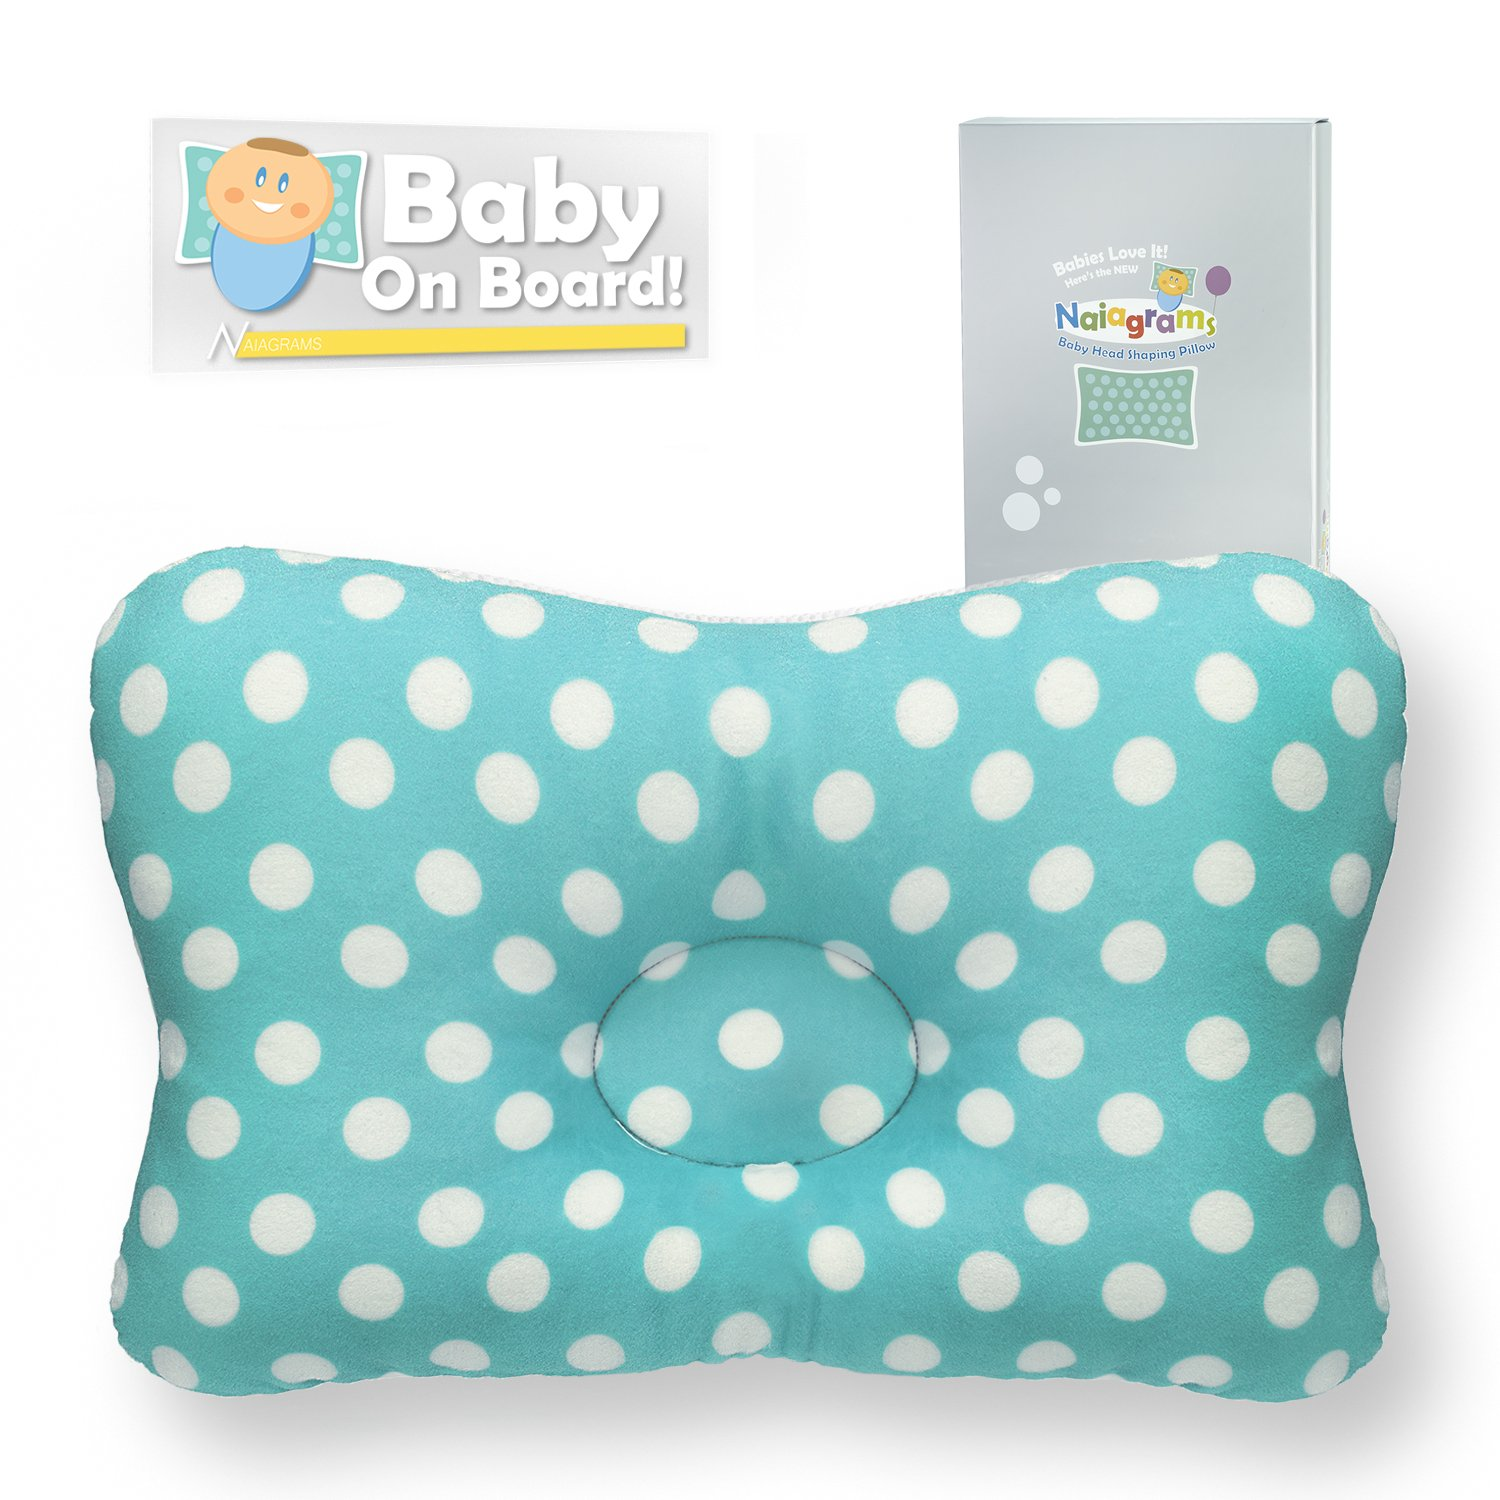 Baby Head Shaping Pillow - Breathable 3D Air Mesh Infant Pillow Filled with Hypoallergenic Organic Cotton - Newborn Flat Head Prevention and Correction Pillows The Naiagrams